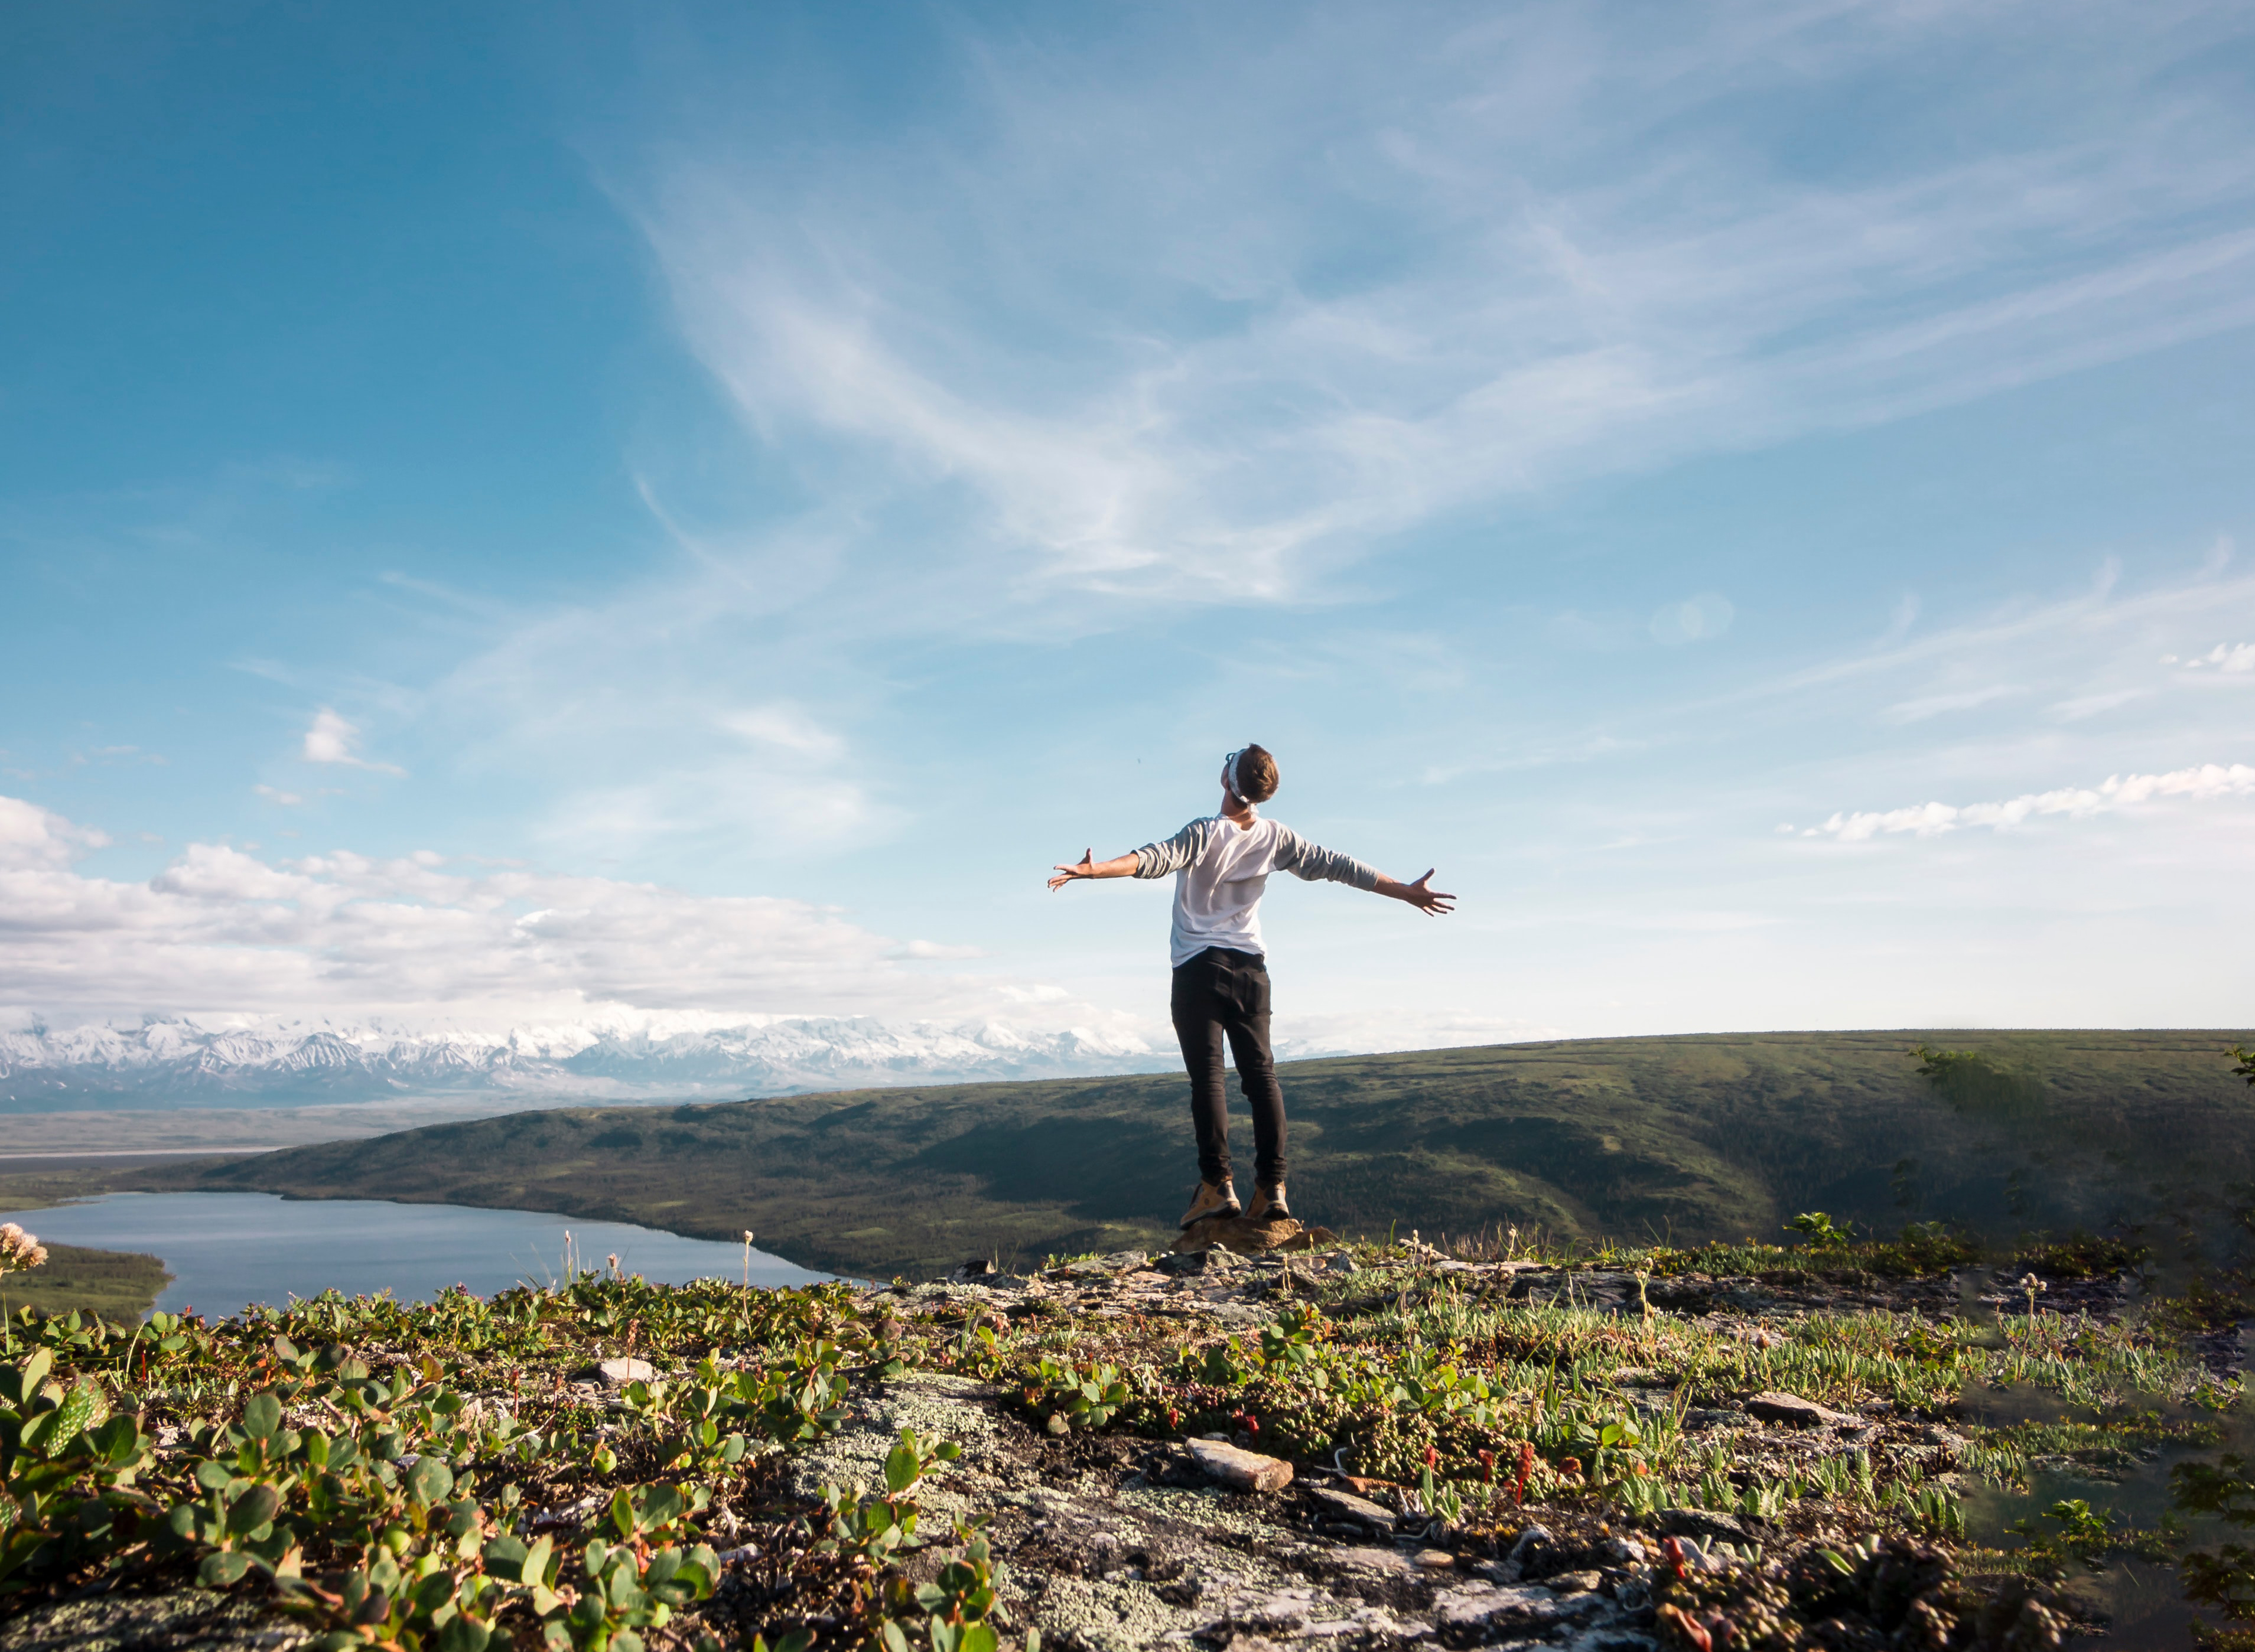 National Parks Trip —A hiker spreads arms as they face a magnificent vista.